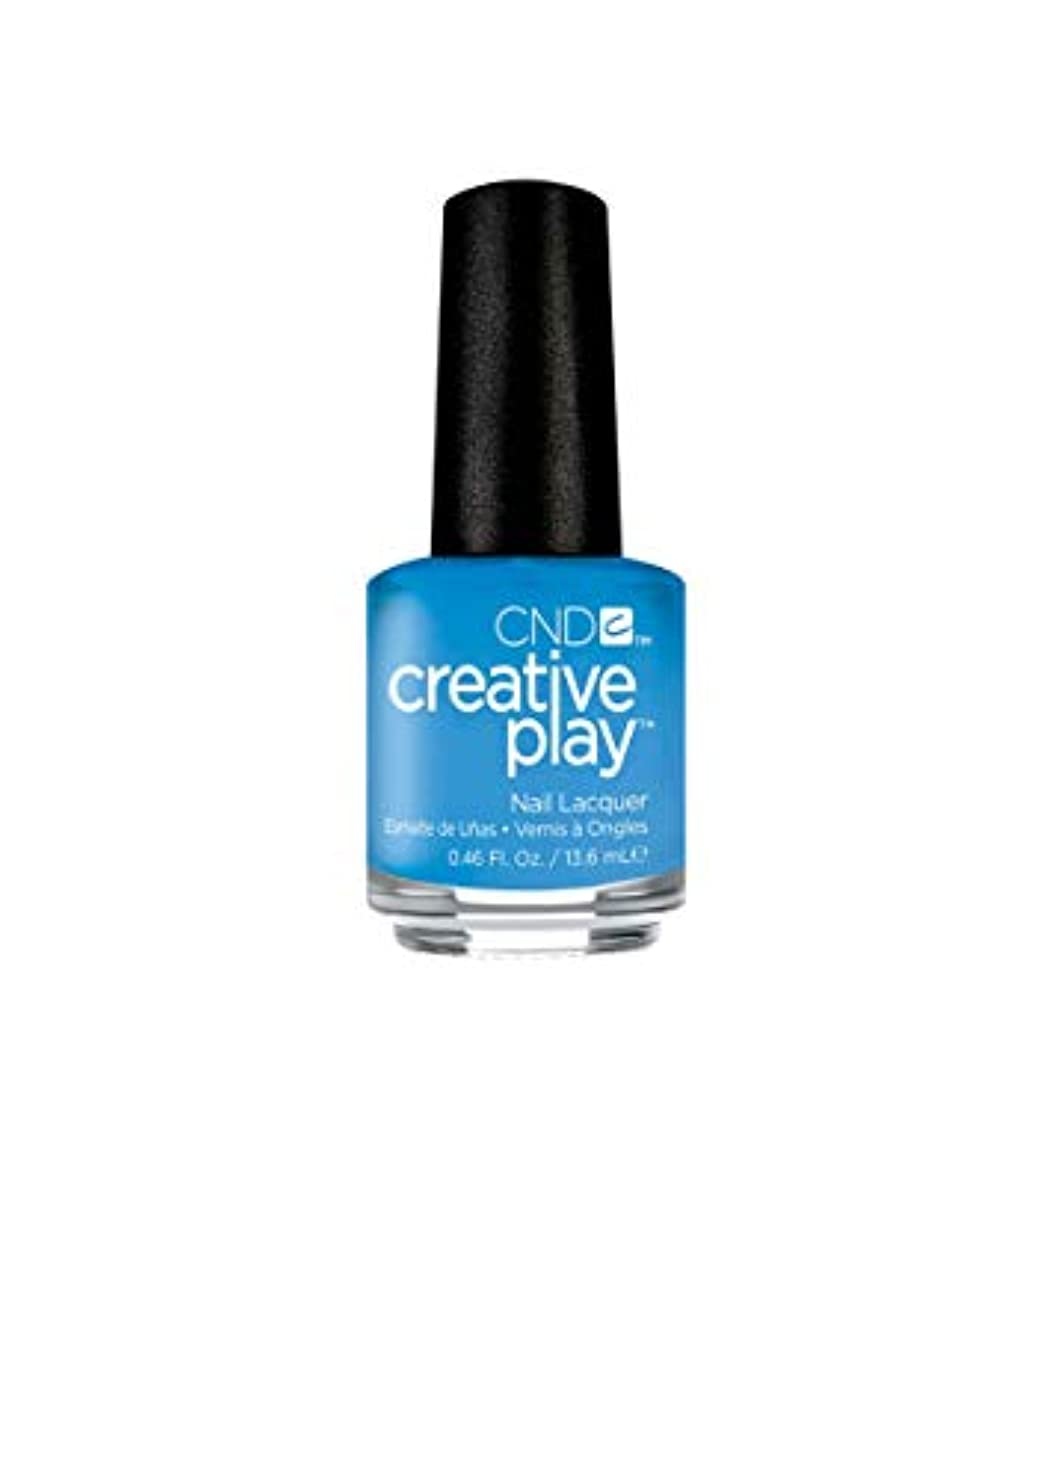 CND Creative Play Lacquer - Iris You Would - 0.46oz / 13.6ml